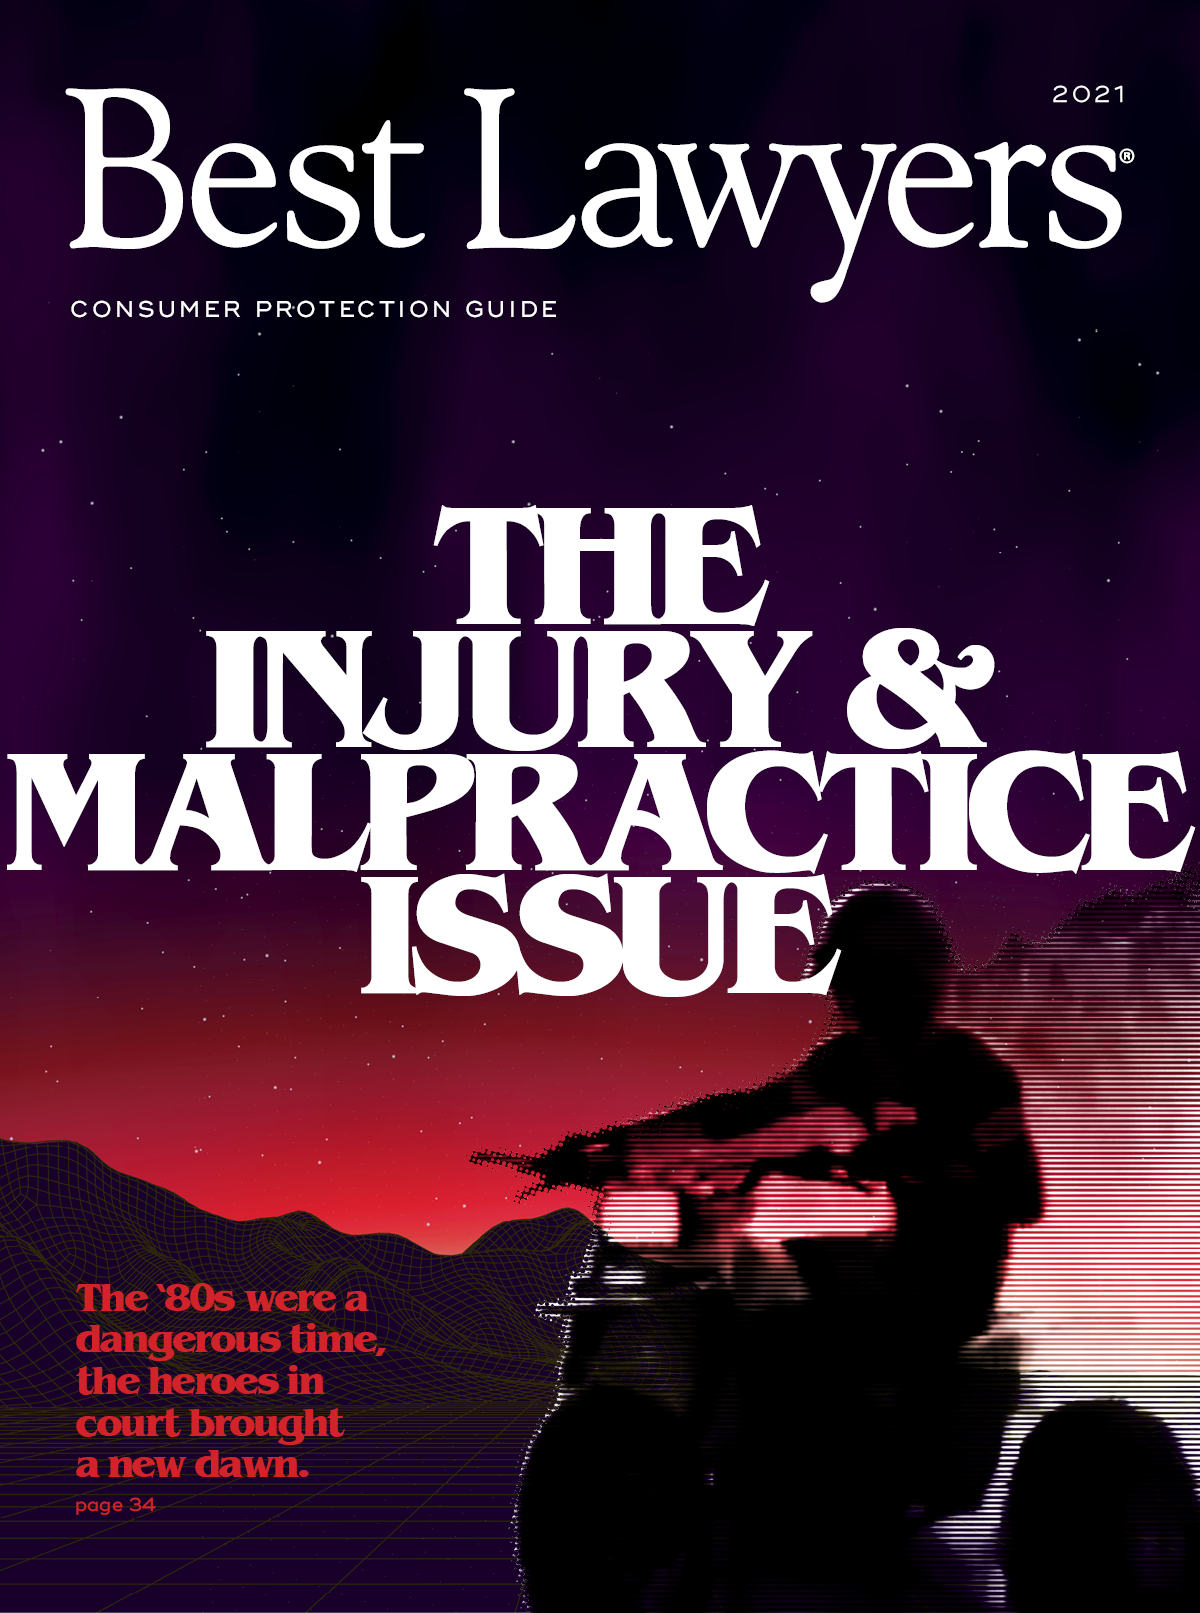 Best Lawyers: The Injury & Malpractice Issue